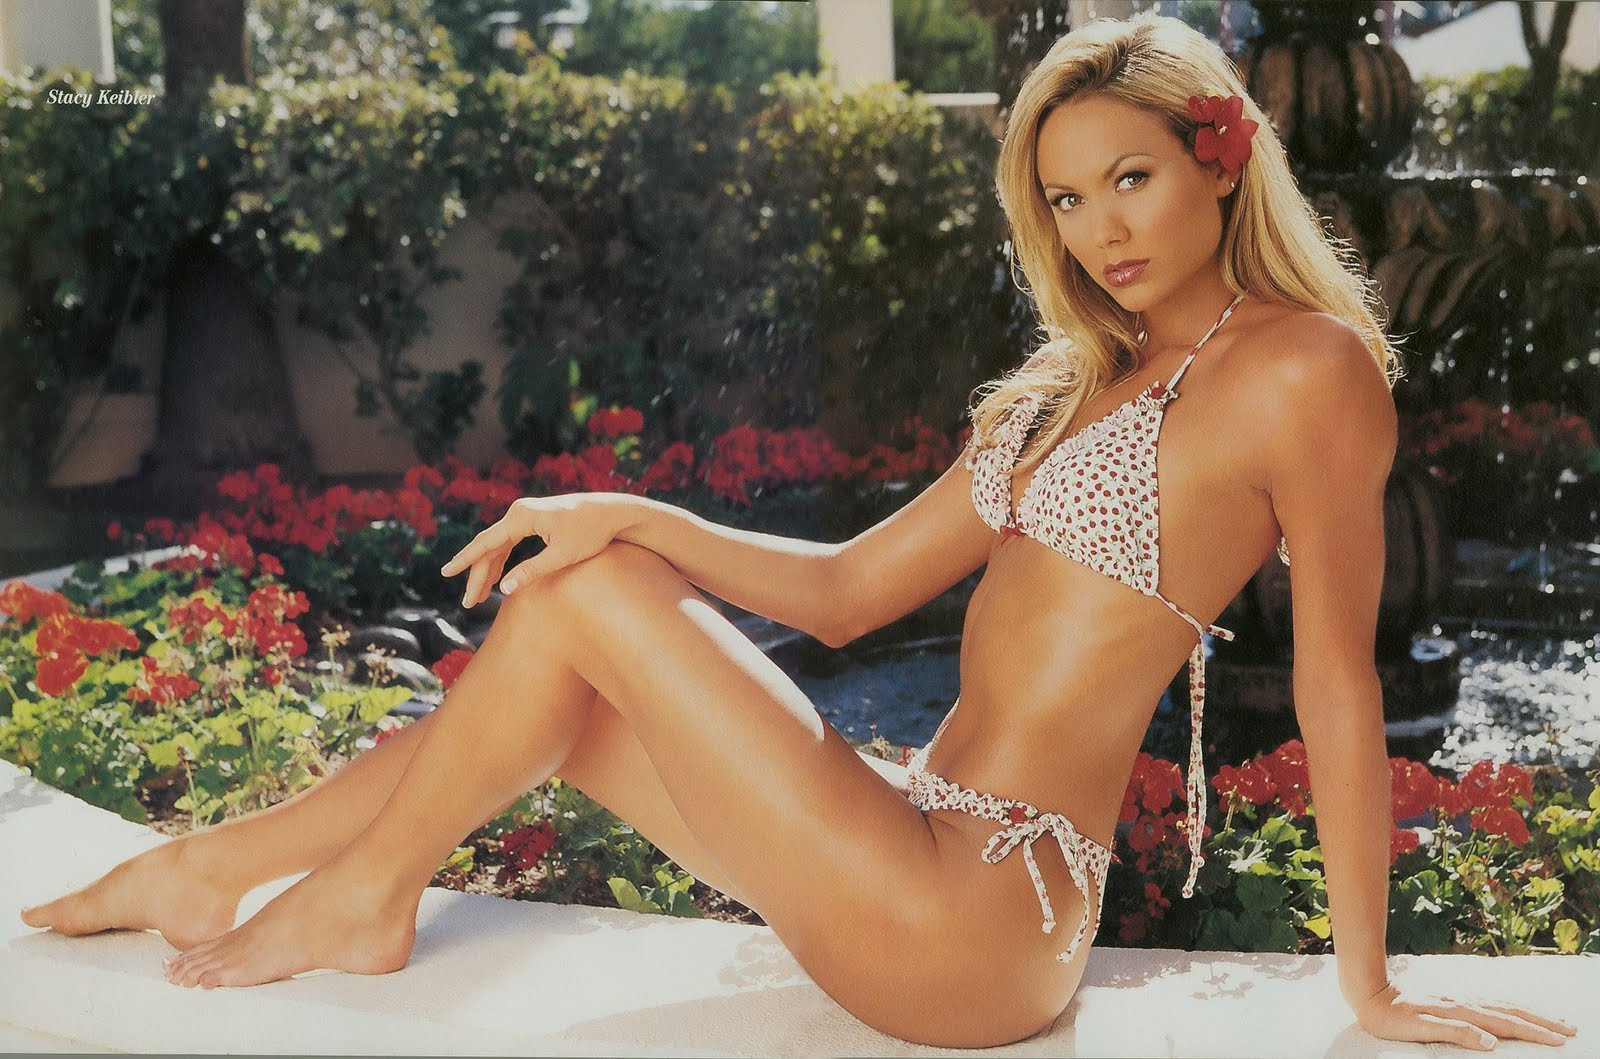 Stacy keibler mens fitness photoshoot june 2012 1